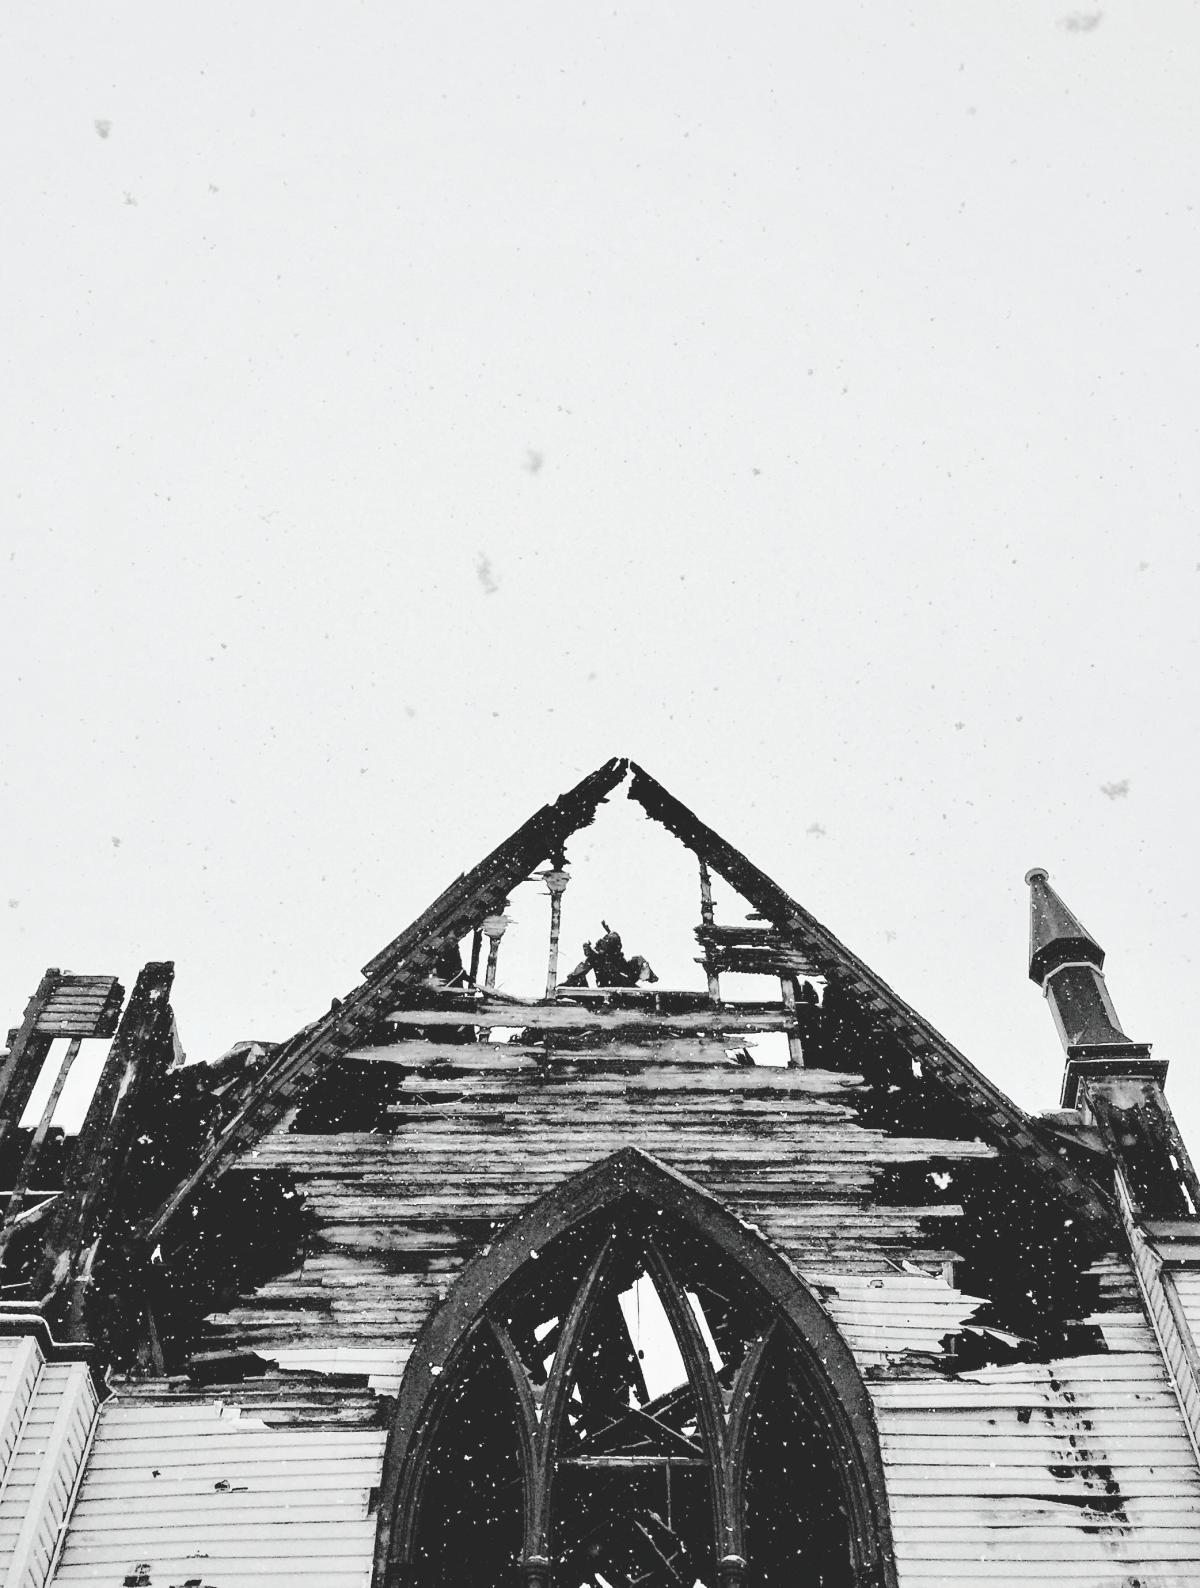 A torched church. Location unspecified.